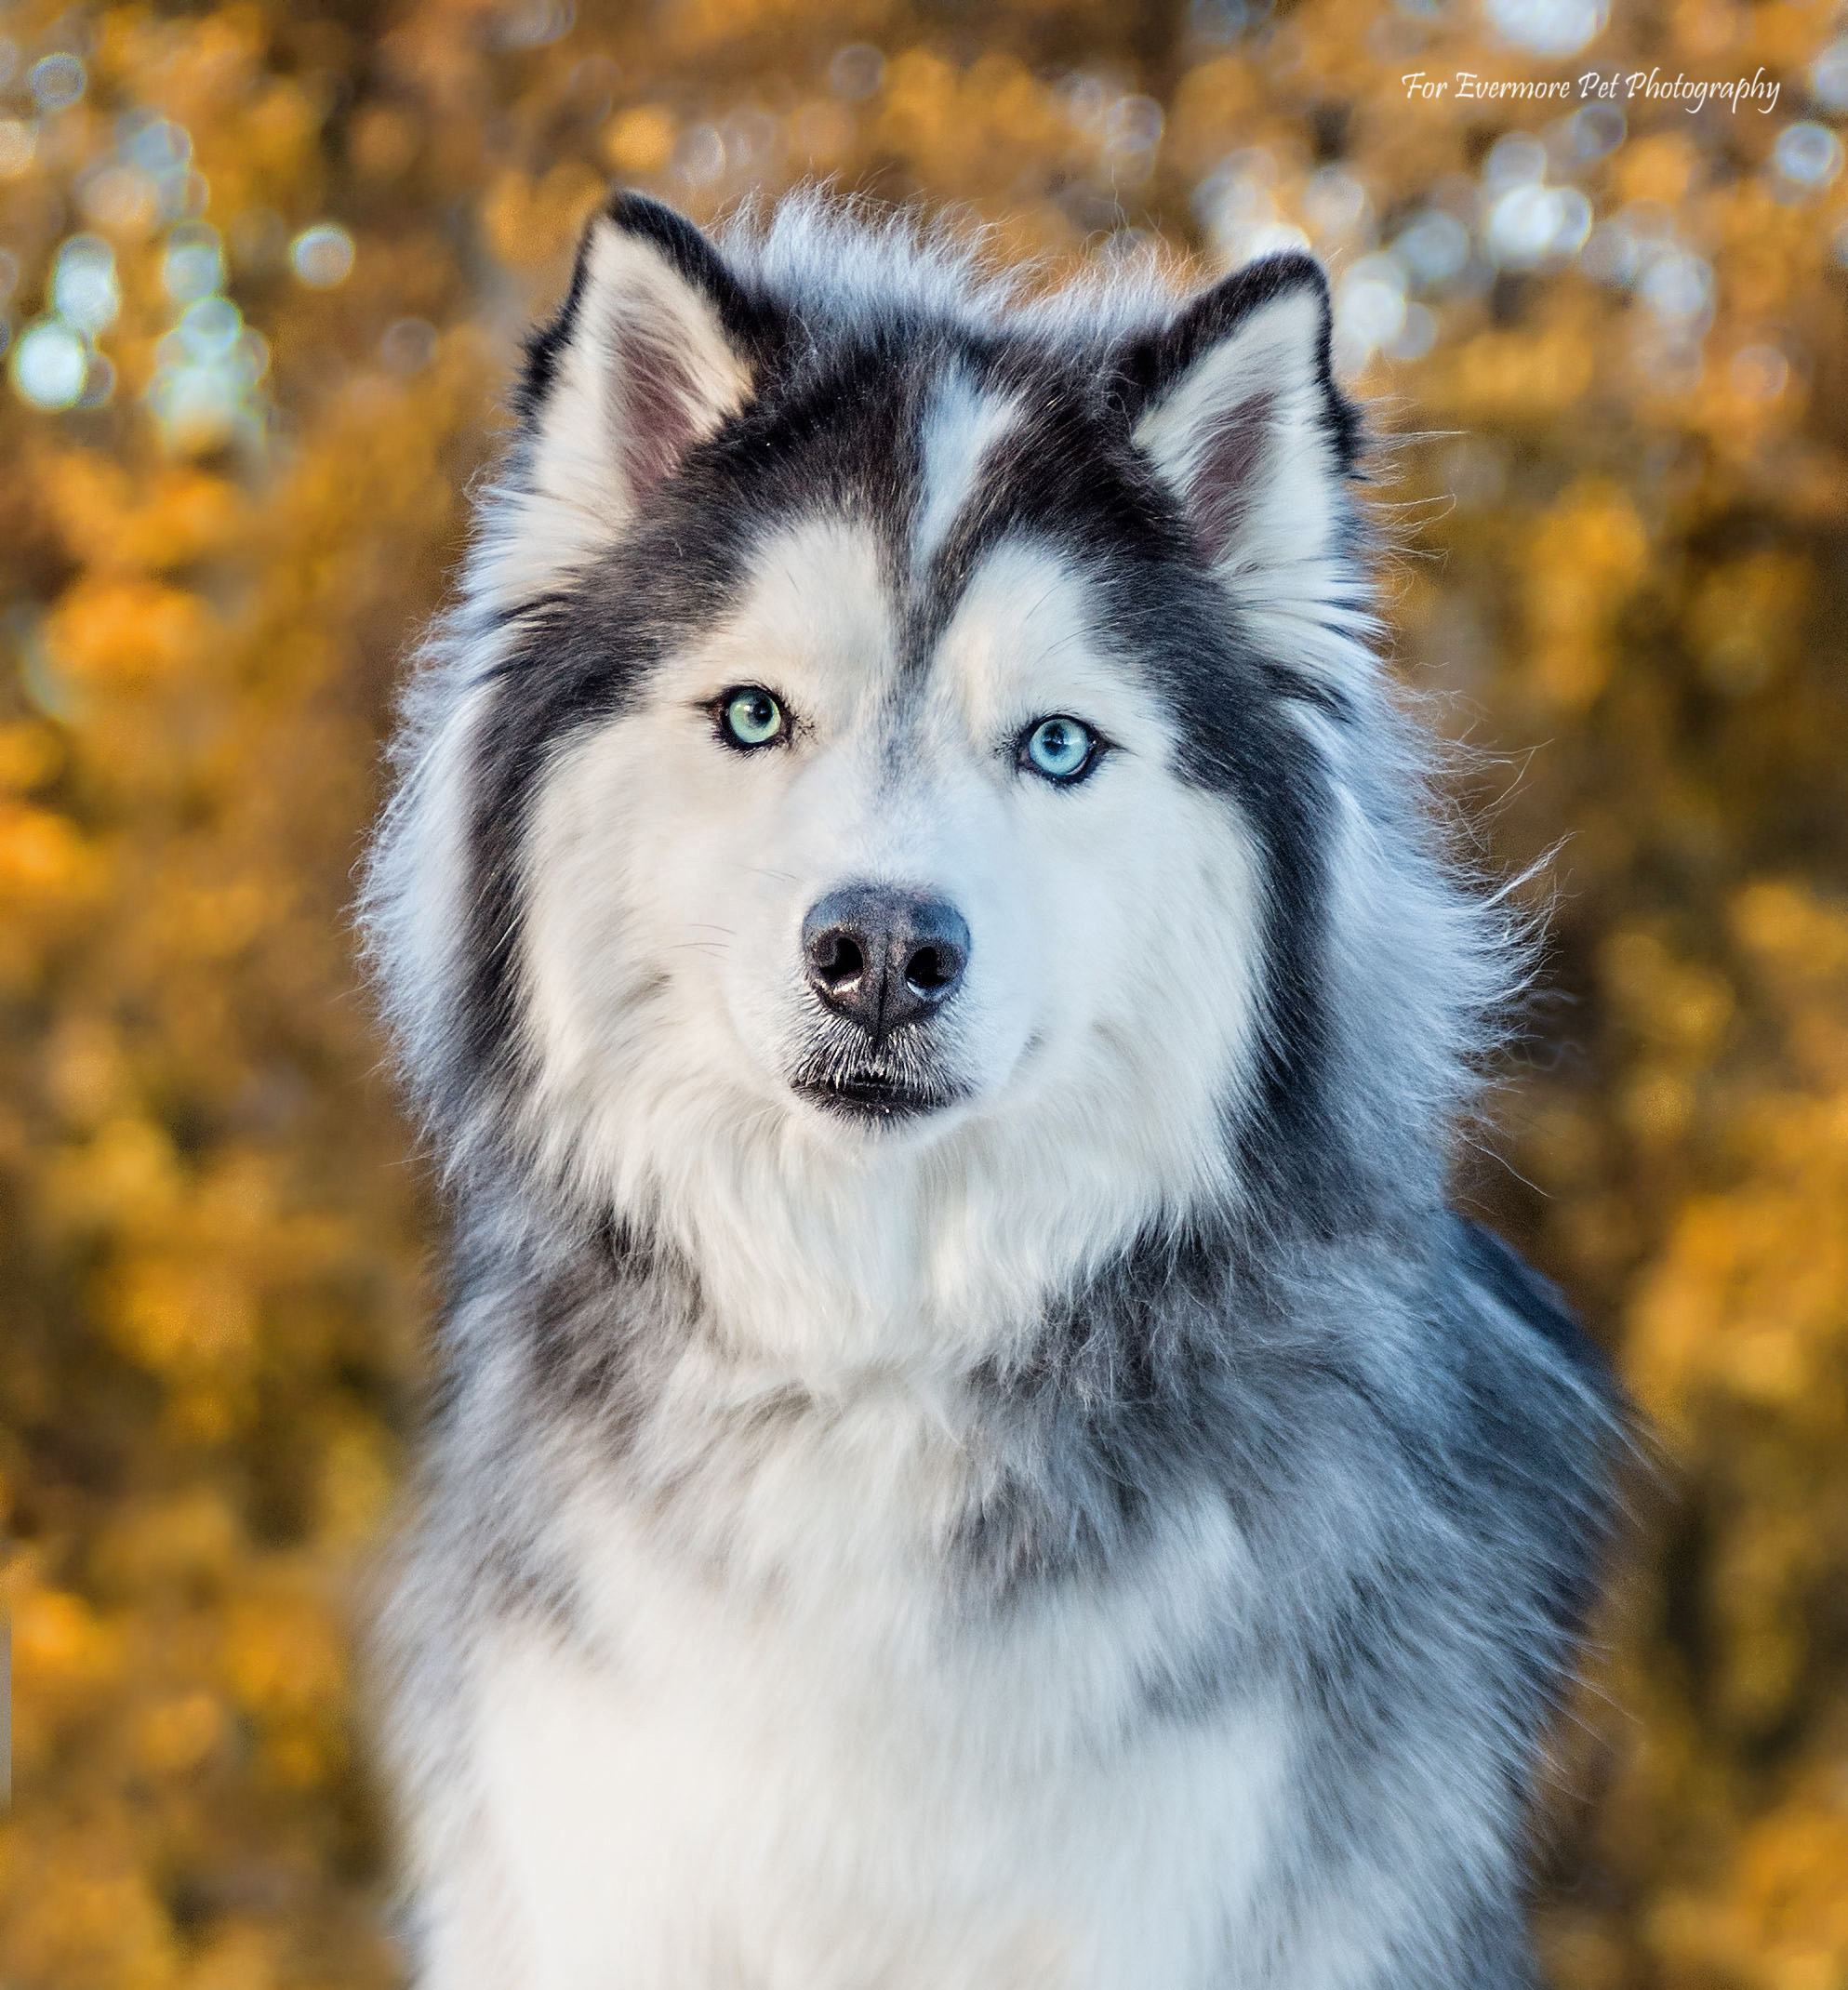 Momo the Siberian Husky